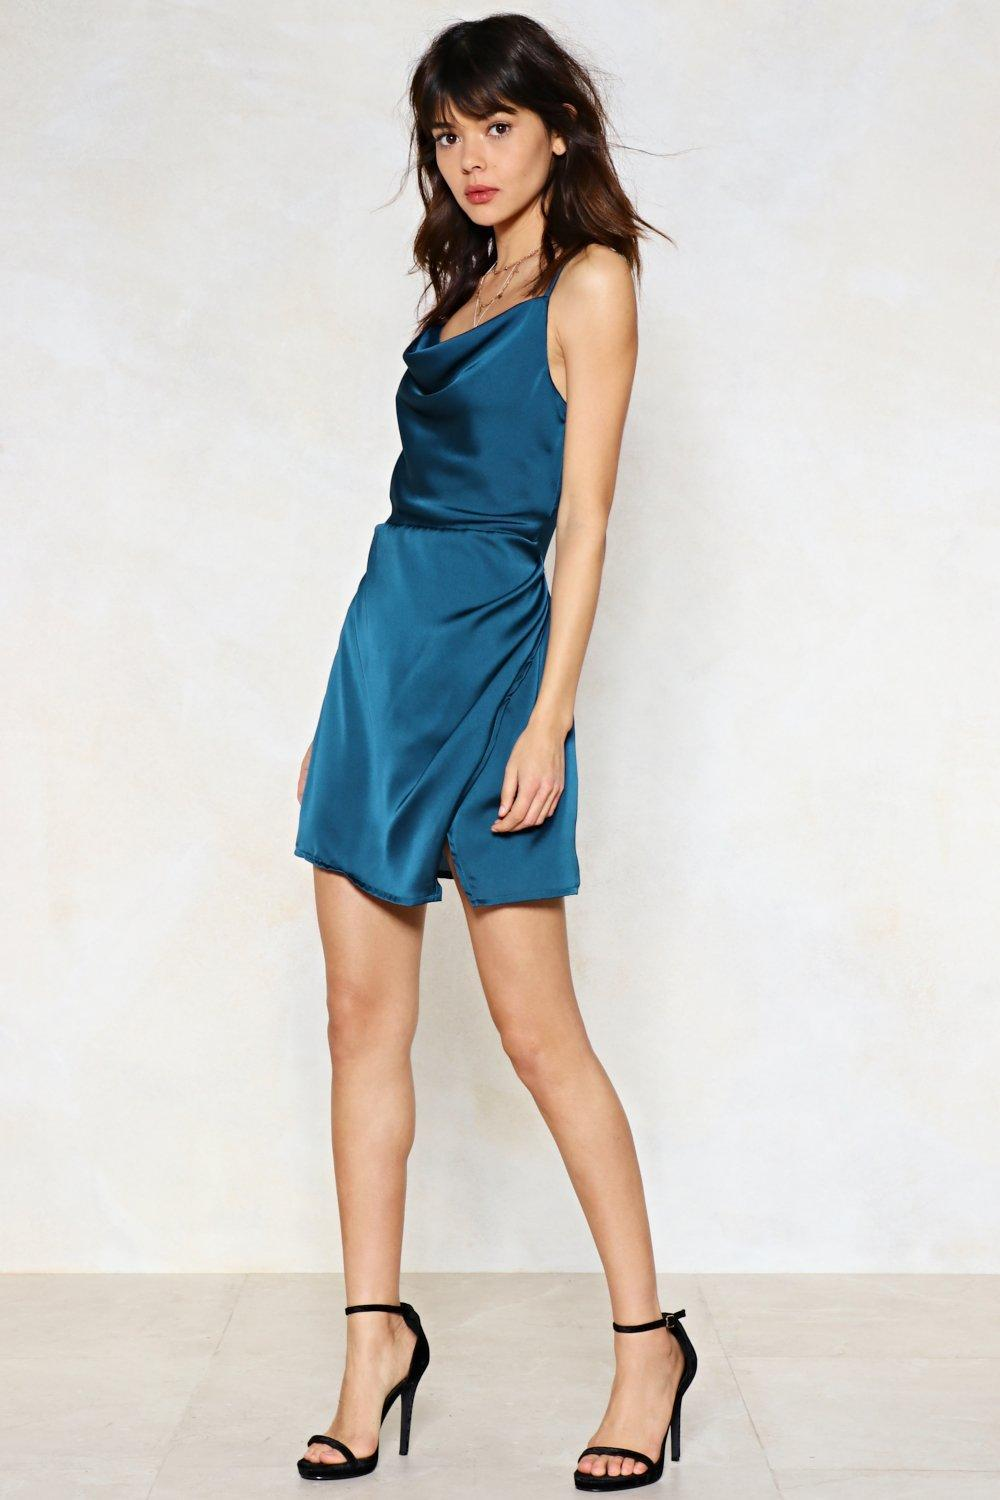 Nasty Gal Synthetic Quot Cowl About Mini Dress Quot In Teal Blue